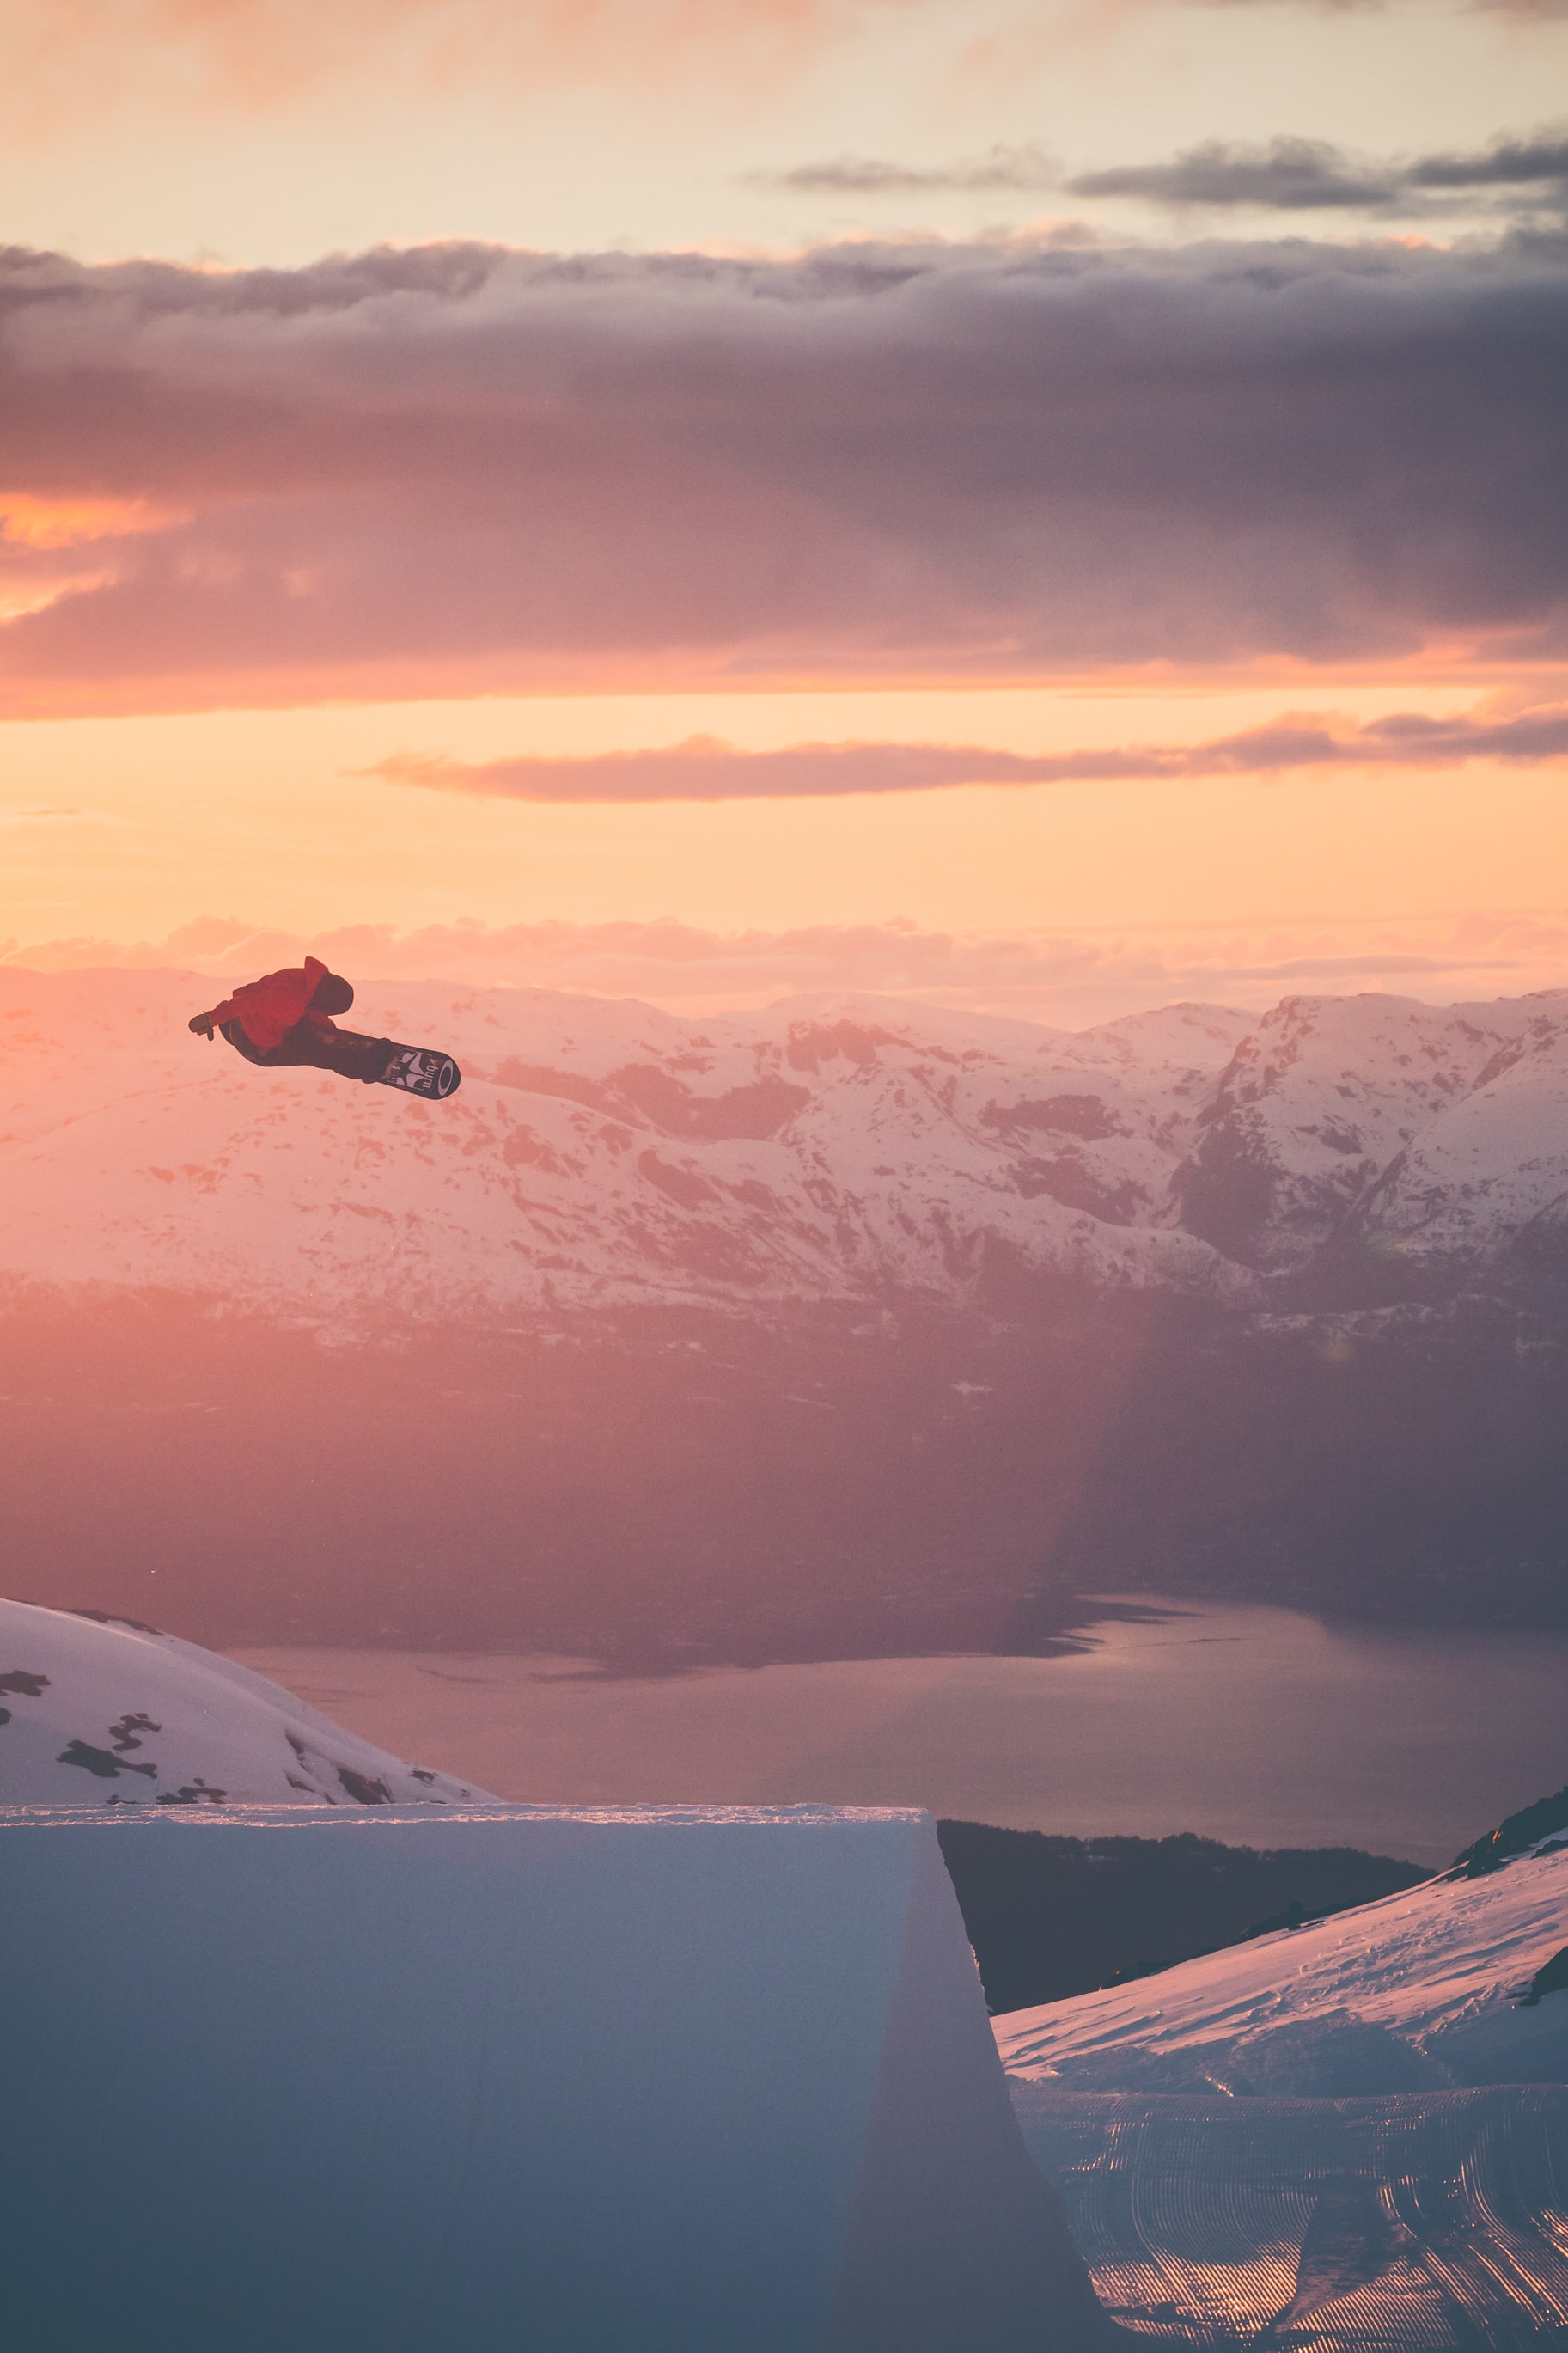 A snowboarder is airborne surrounded by golden skies and snowy mountains